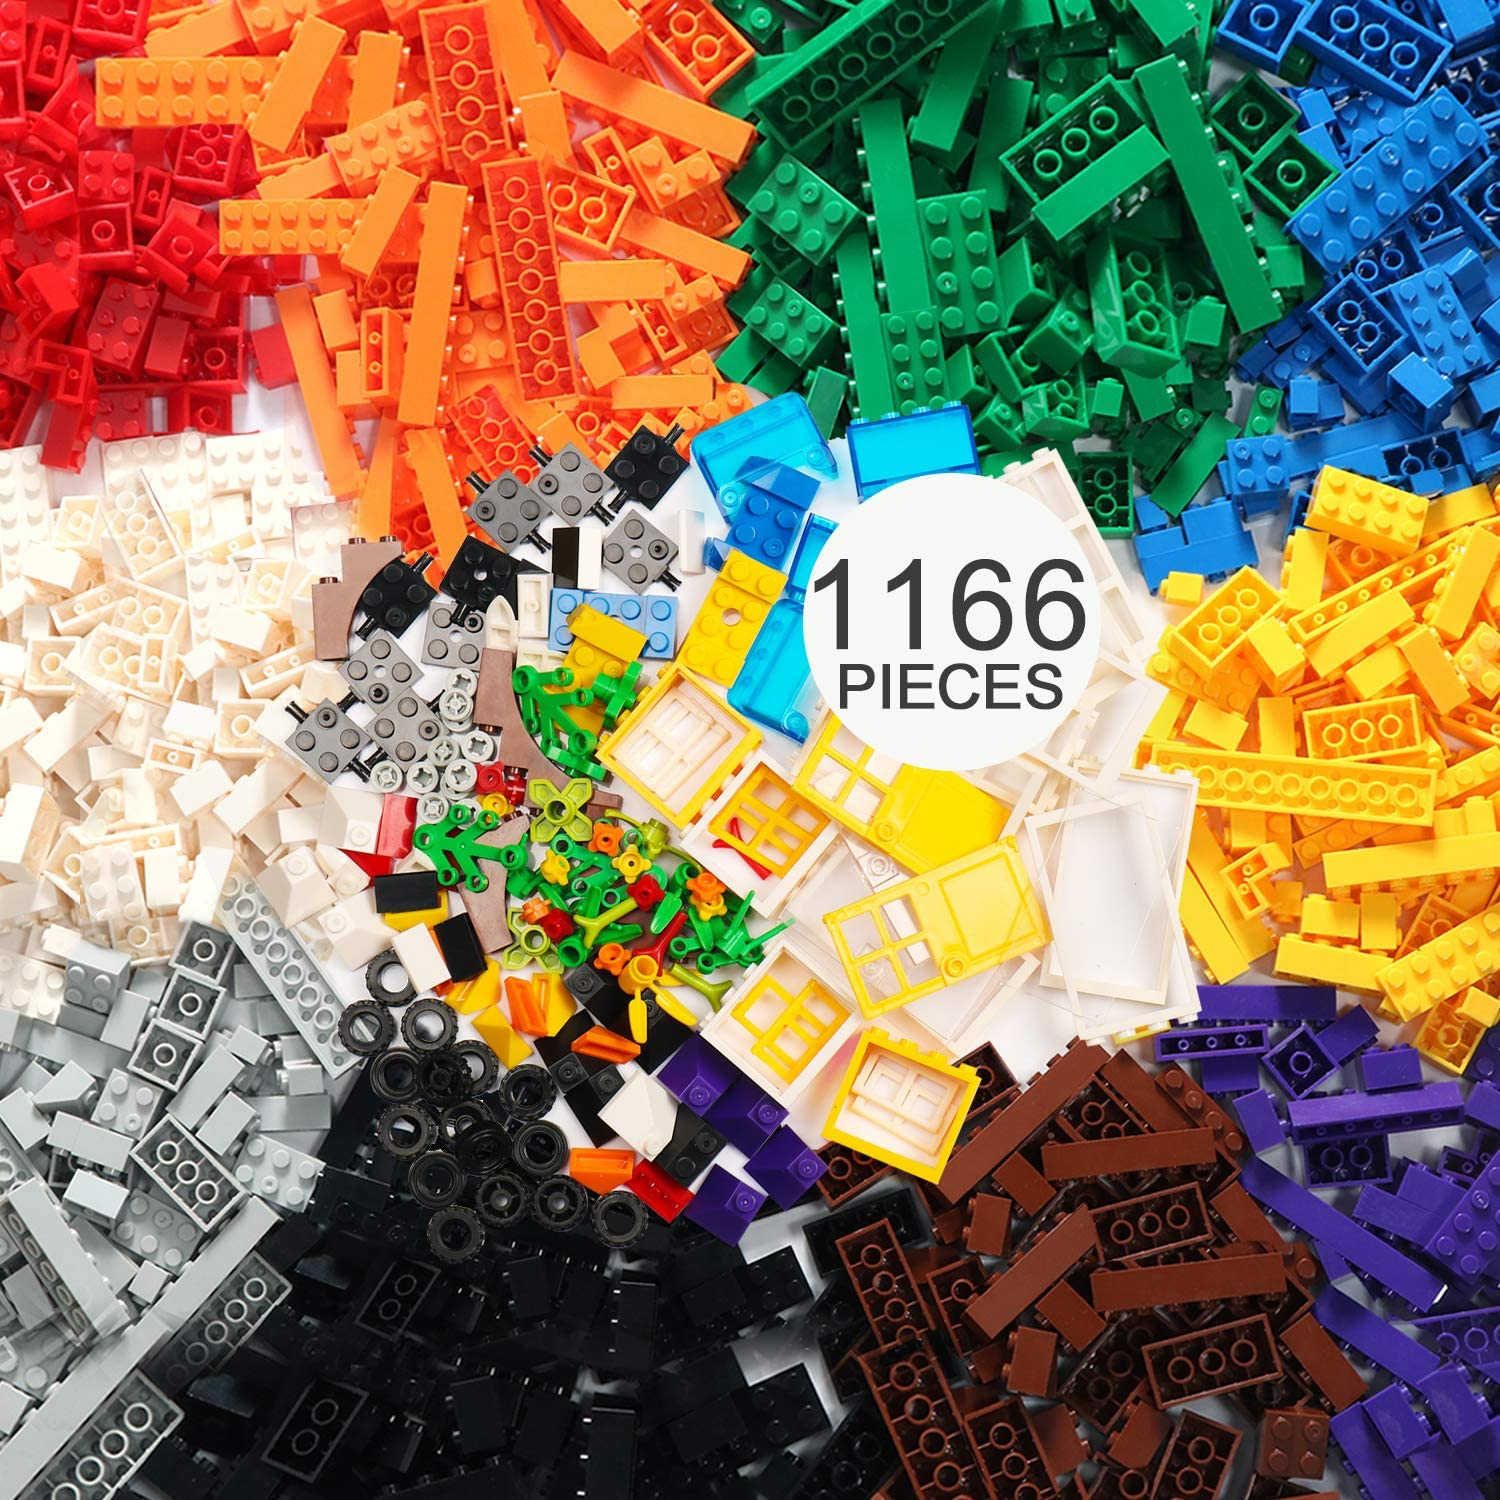 EP Quantity limited EXERCISE N PLAY 1166 Piece Bricks Building Kit T NEW before selling with Wheels